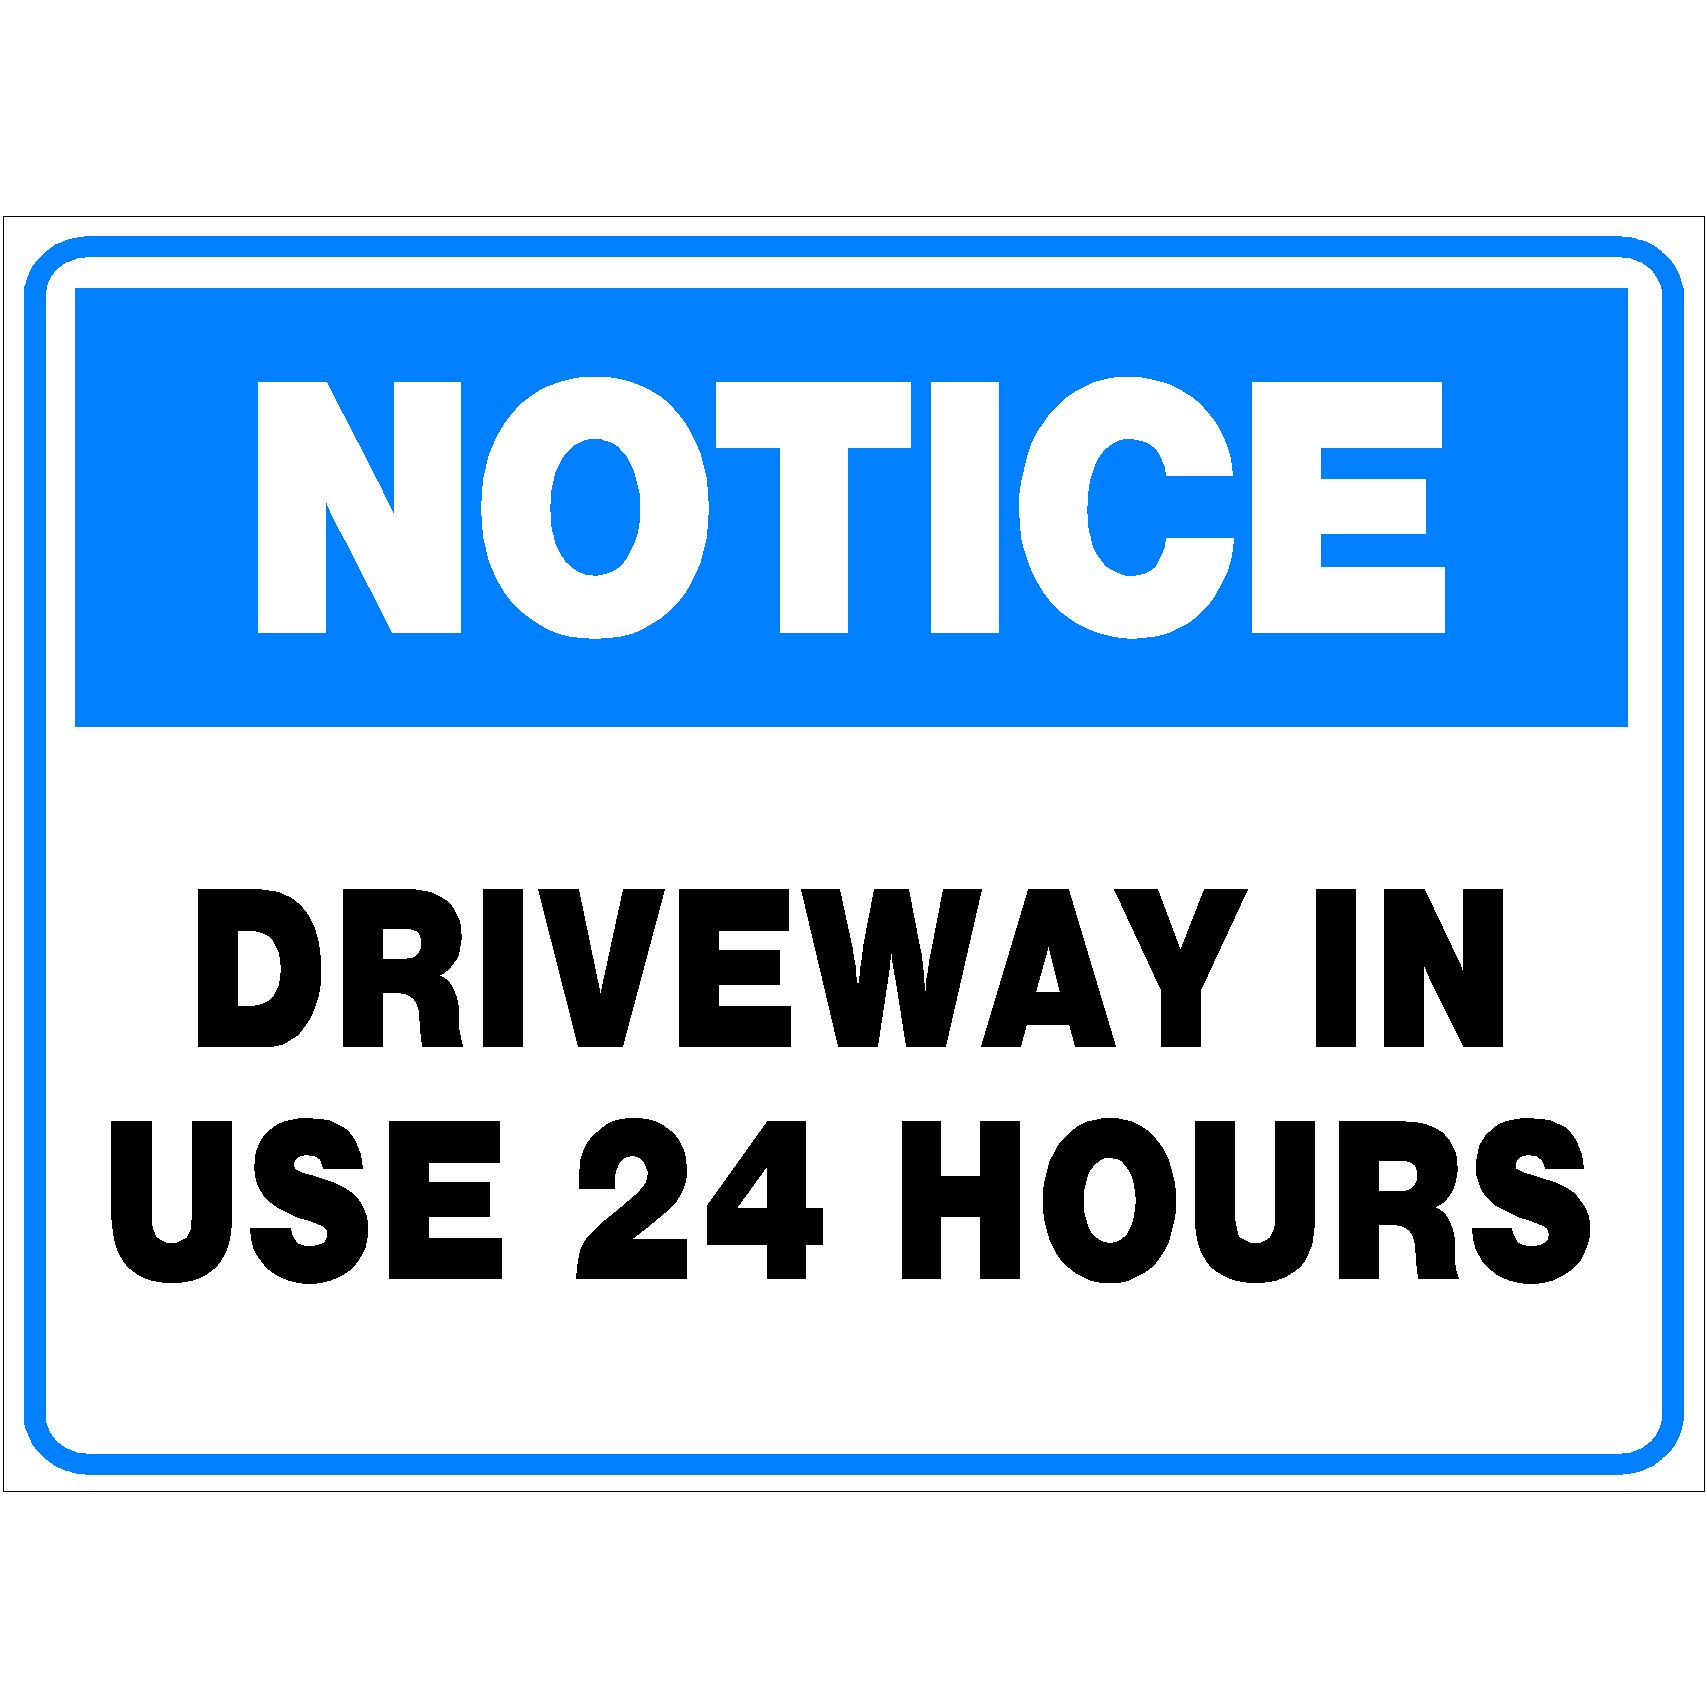 Notice Driveway In Use 24 Hours